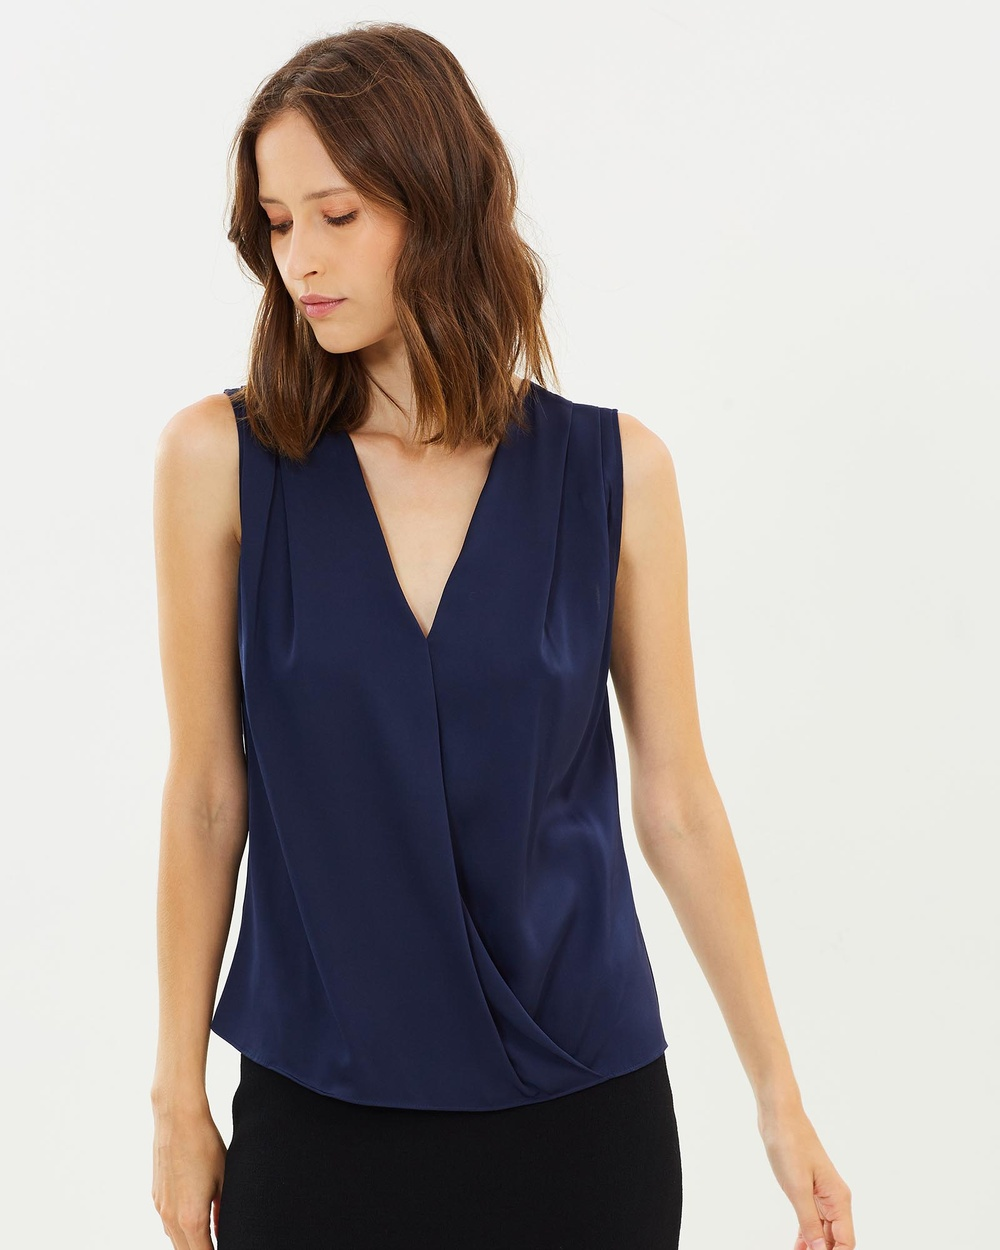 CARL KAPP Wrap Top Tops Arsenic Wrap Top